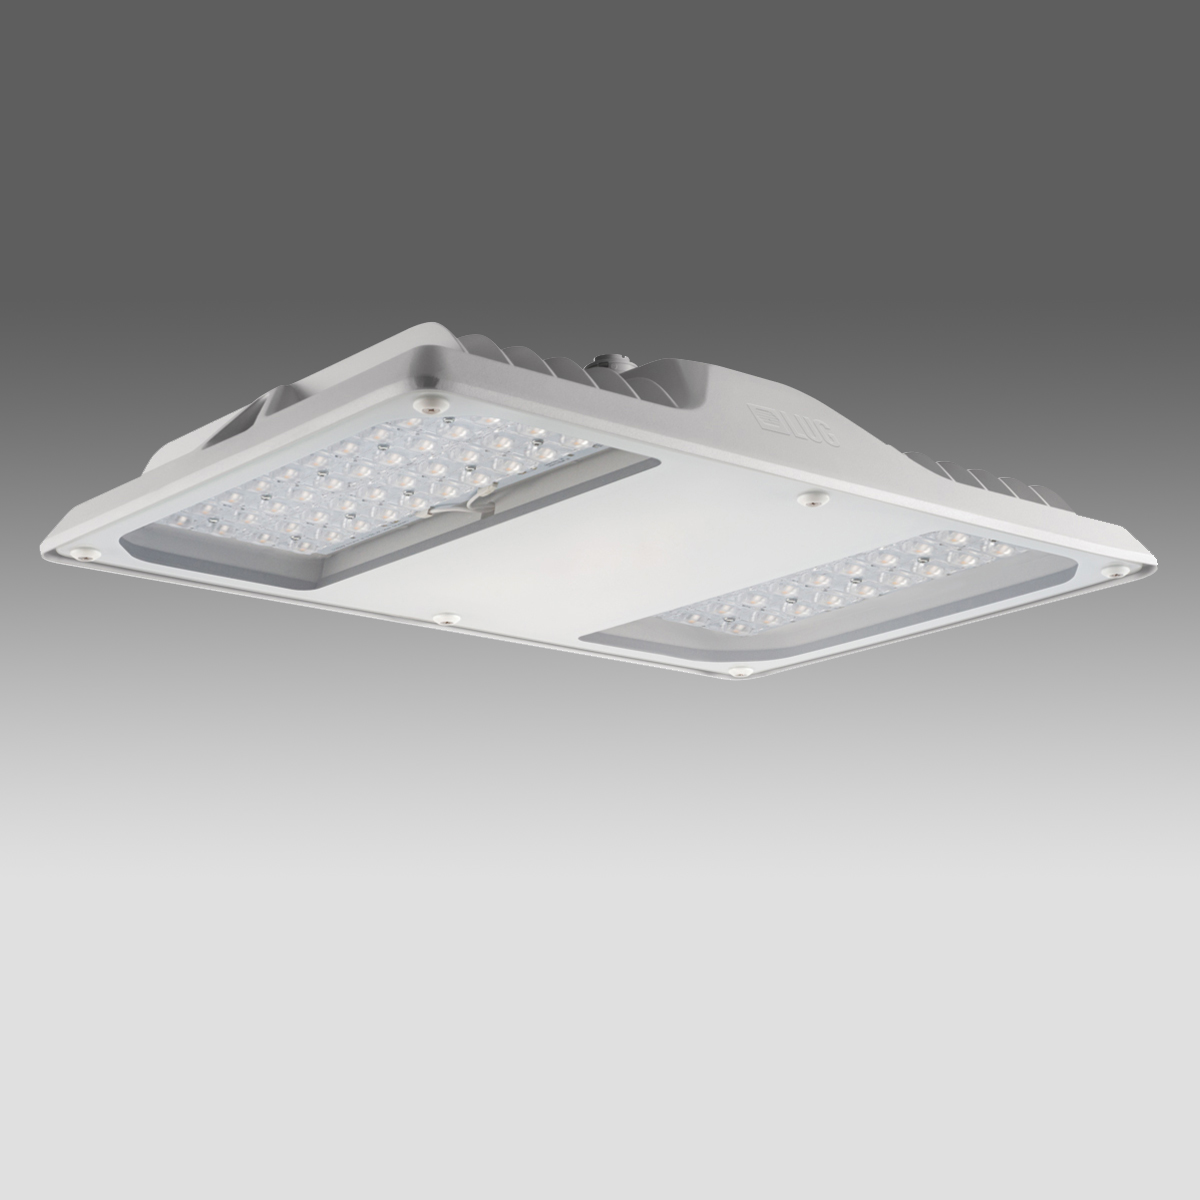 1 Stk Arktur Square PLUS LED 206W 22400lm/840 EVG IP65 120x40°grau LIG4254014